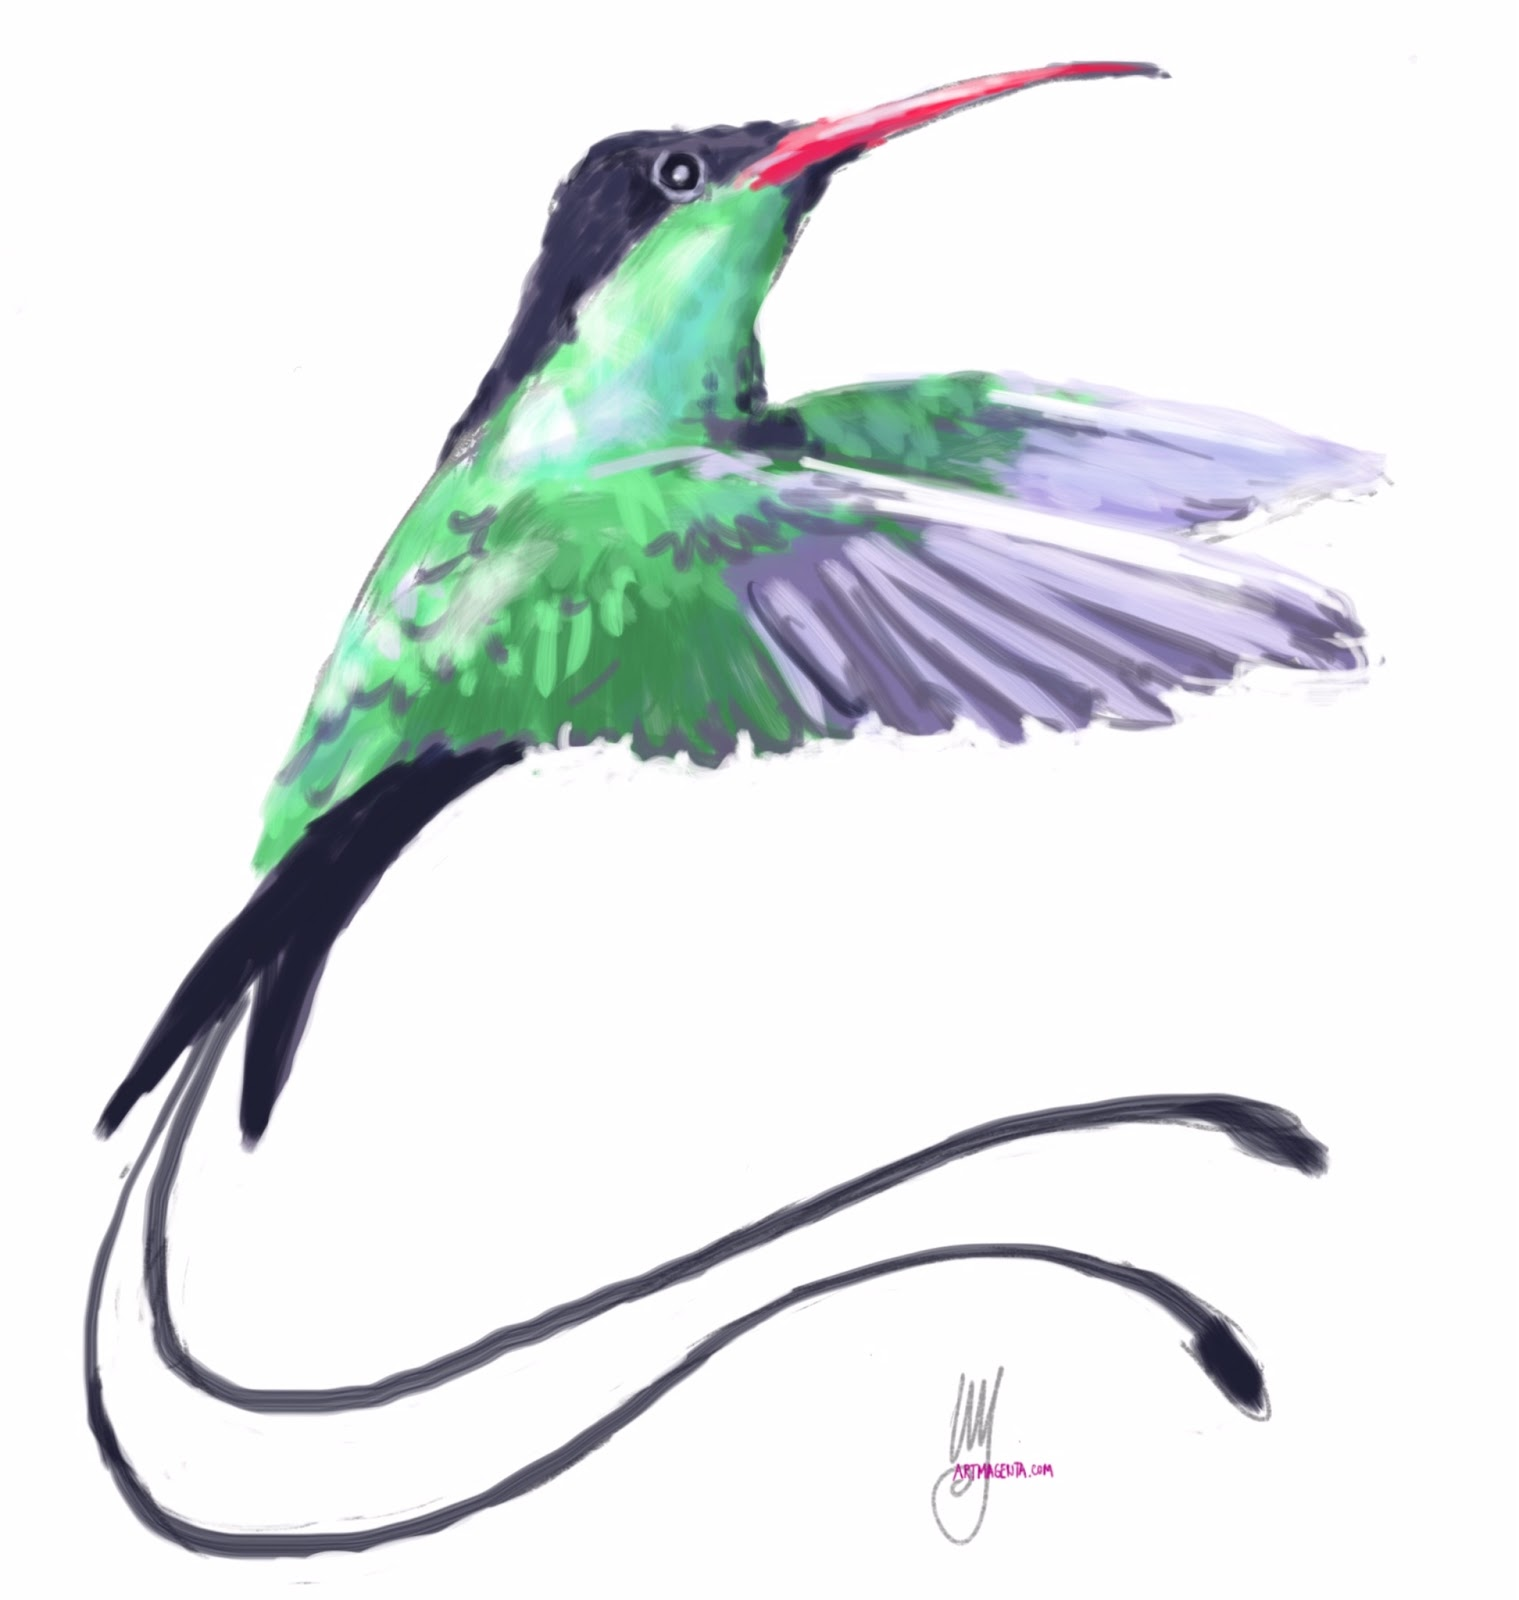 Red-billed streamertail sketch painting. Bird art drawing by illustrator Artmagenta